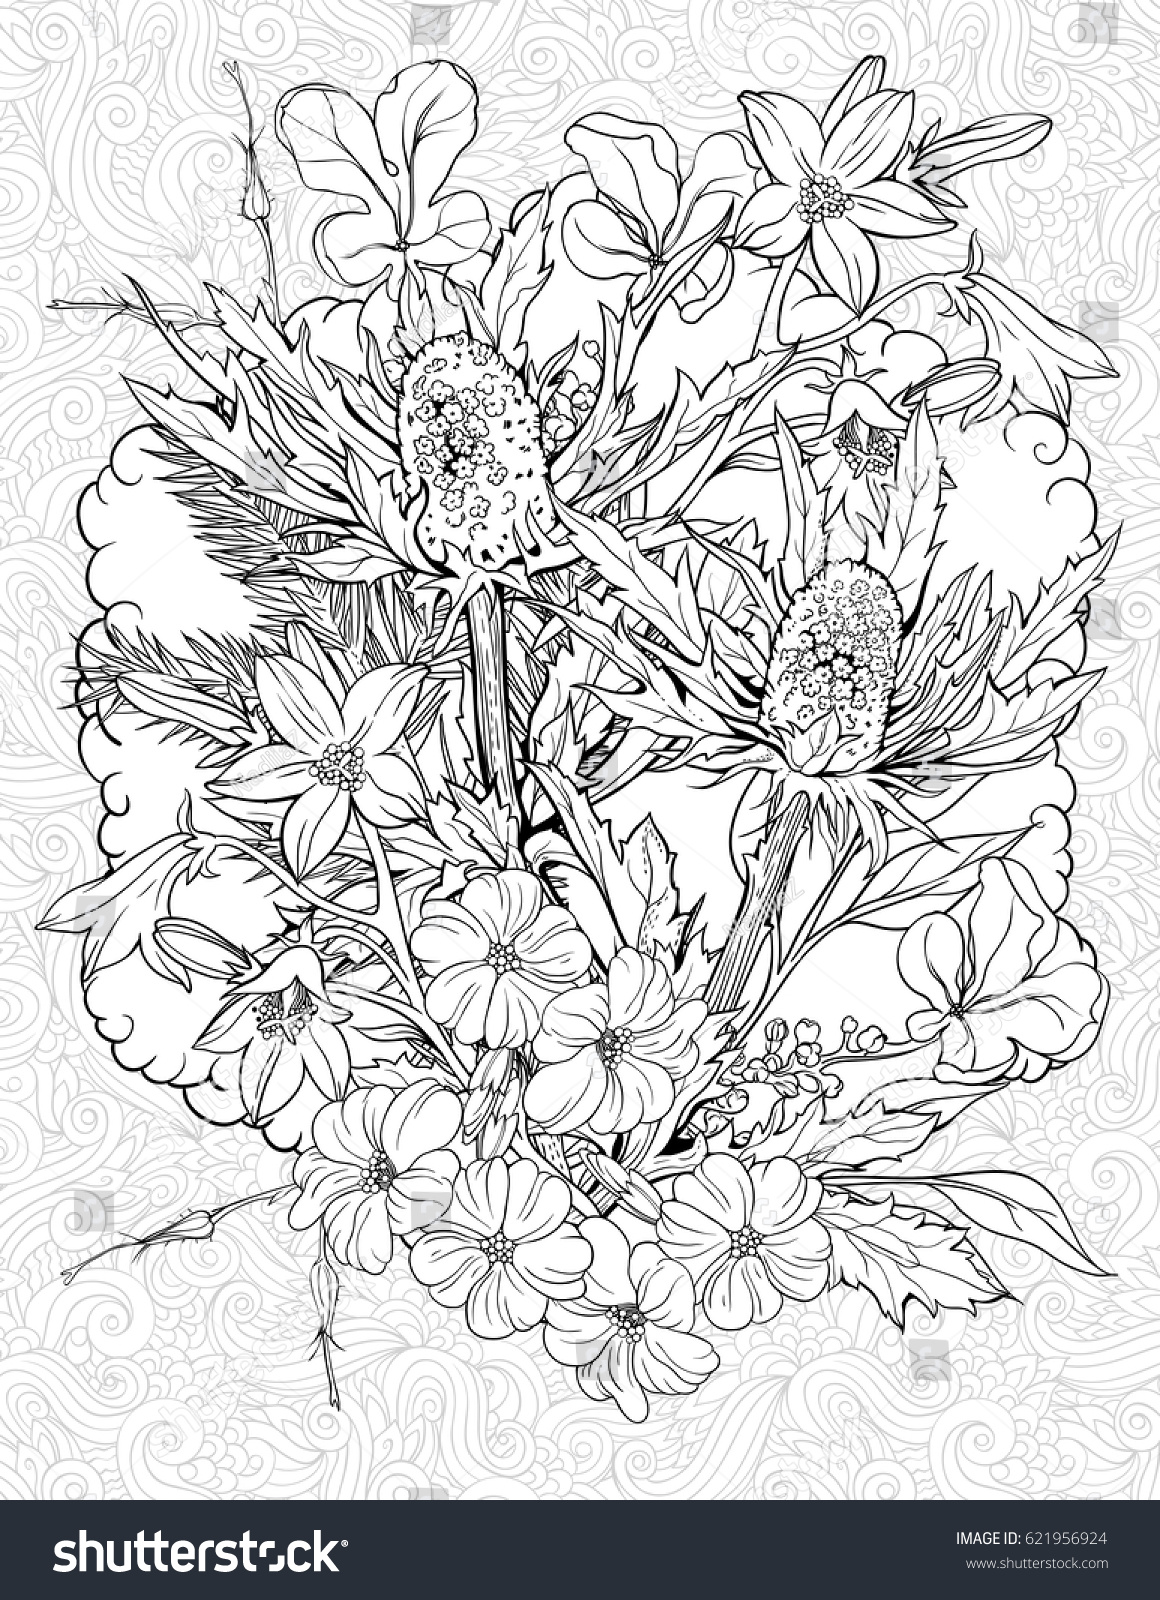 Floristic Coloring Page Flowers Burdock Stock Vector 621956924 ...